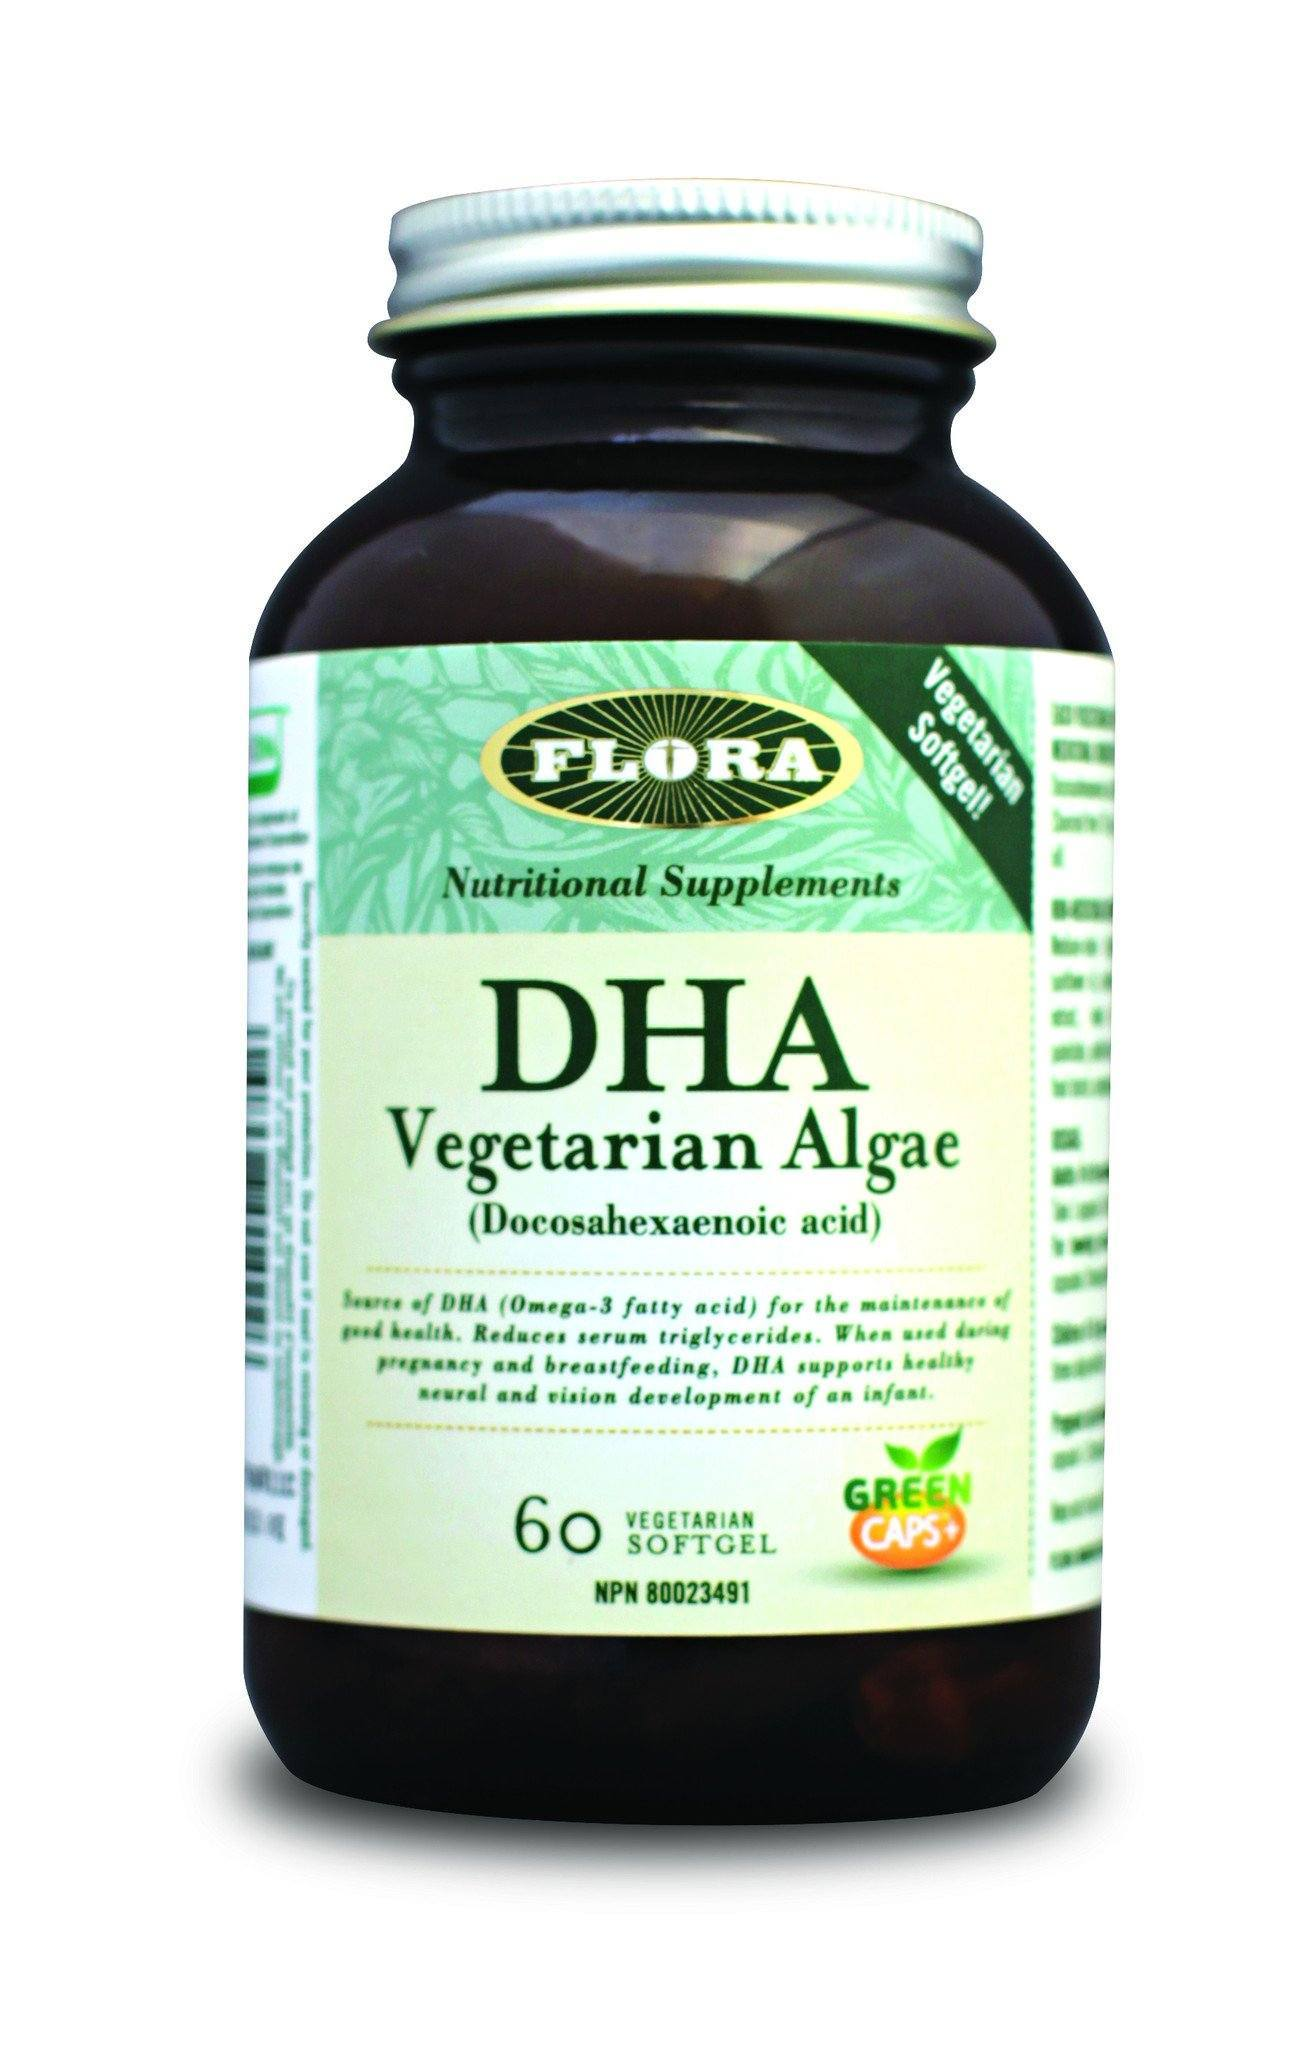 Supplements & Vitamins - Flora - DHA Vegetarian Algae, 60 Caps